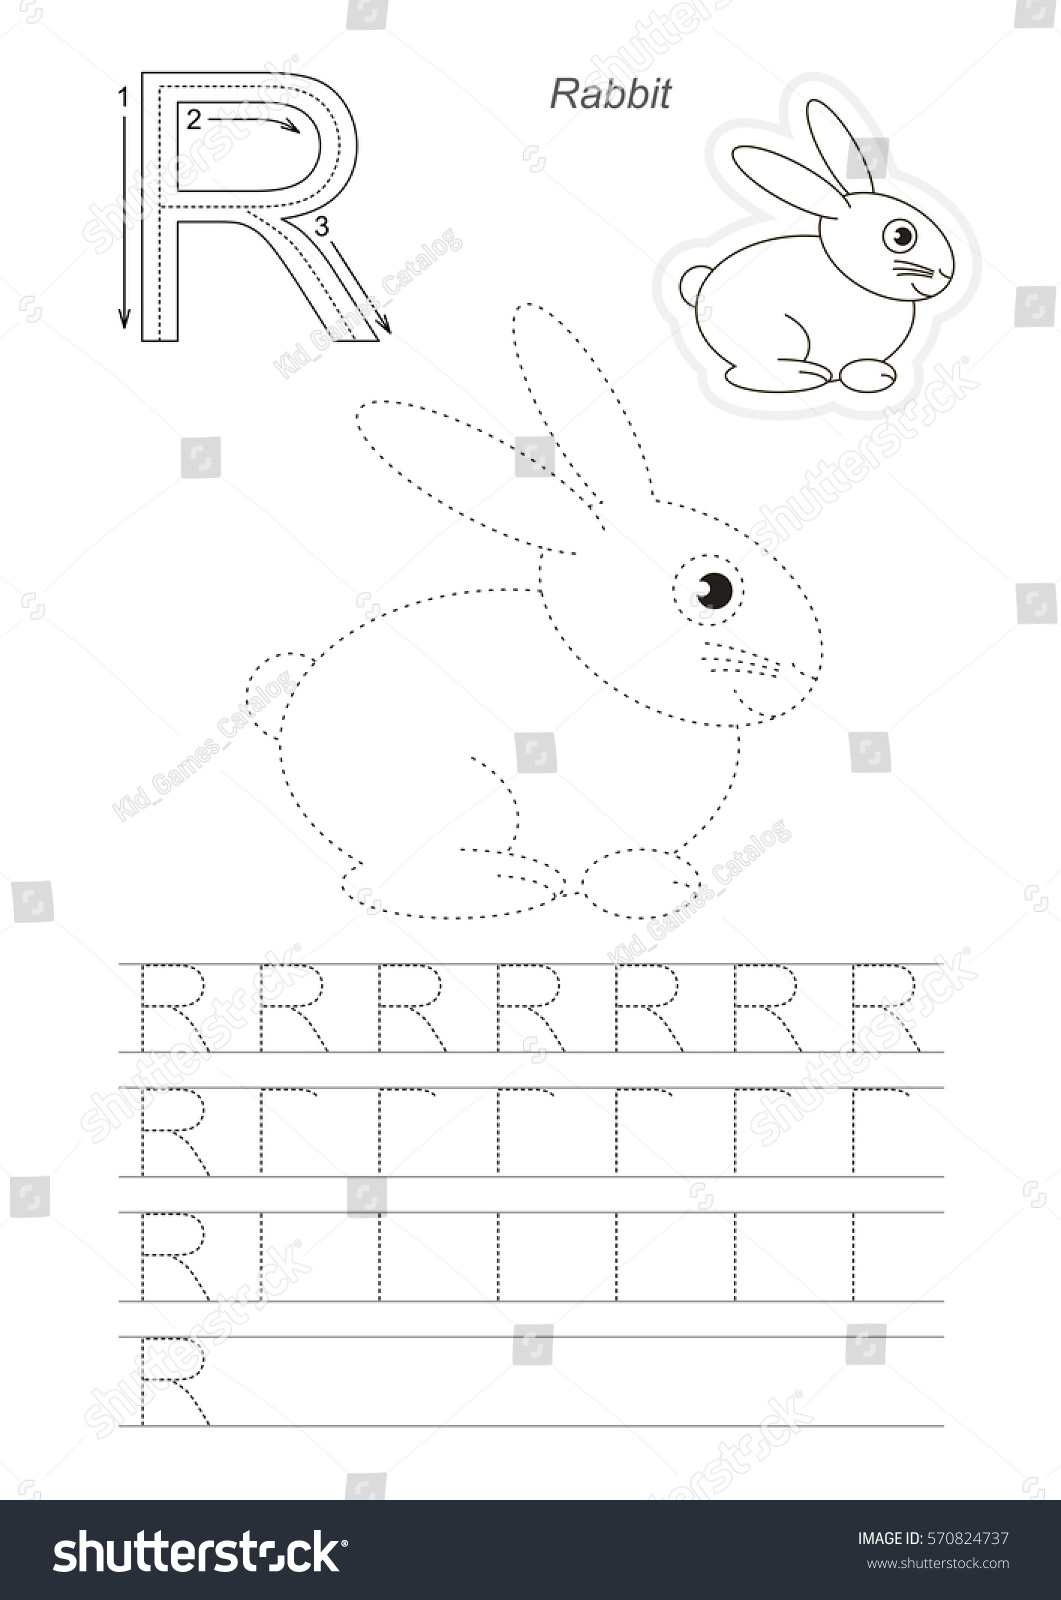 worksheet Earthworm Diagram Worksheet rabbit diagram worksheet free download wiring diagrams learn alphabet cute dot stock vector 570824737 the to educational game for kids tracing at earthworm wo